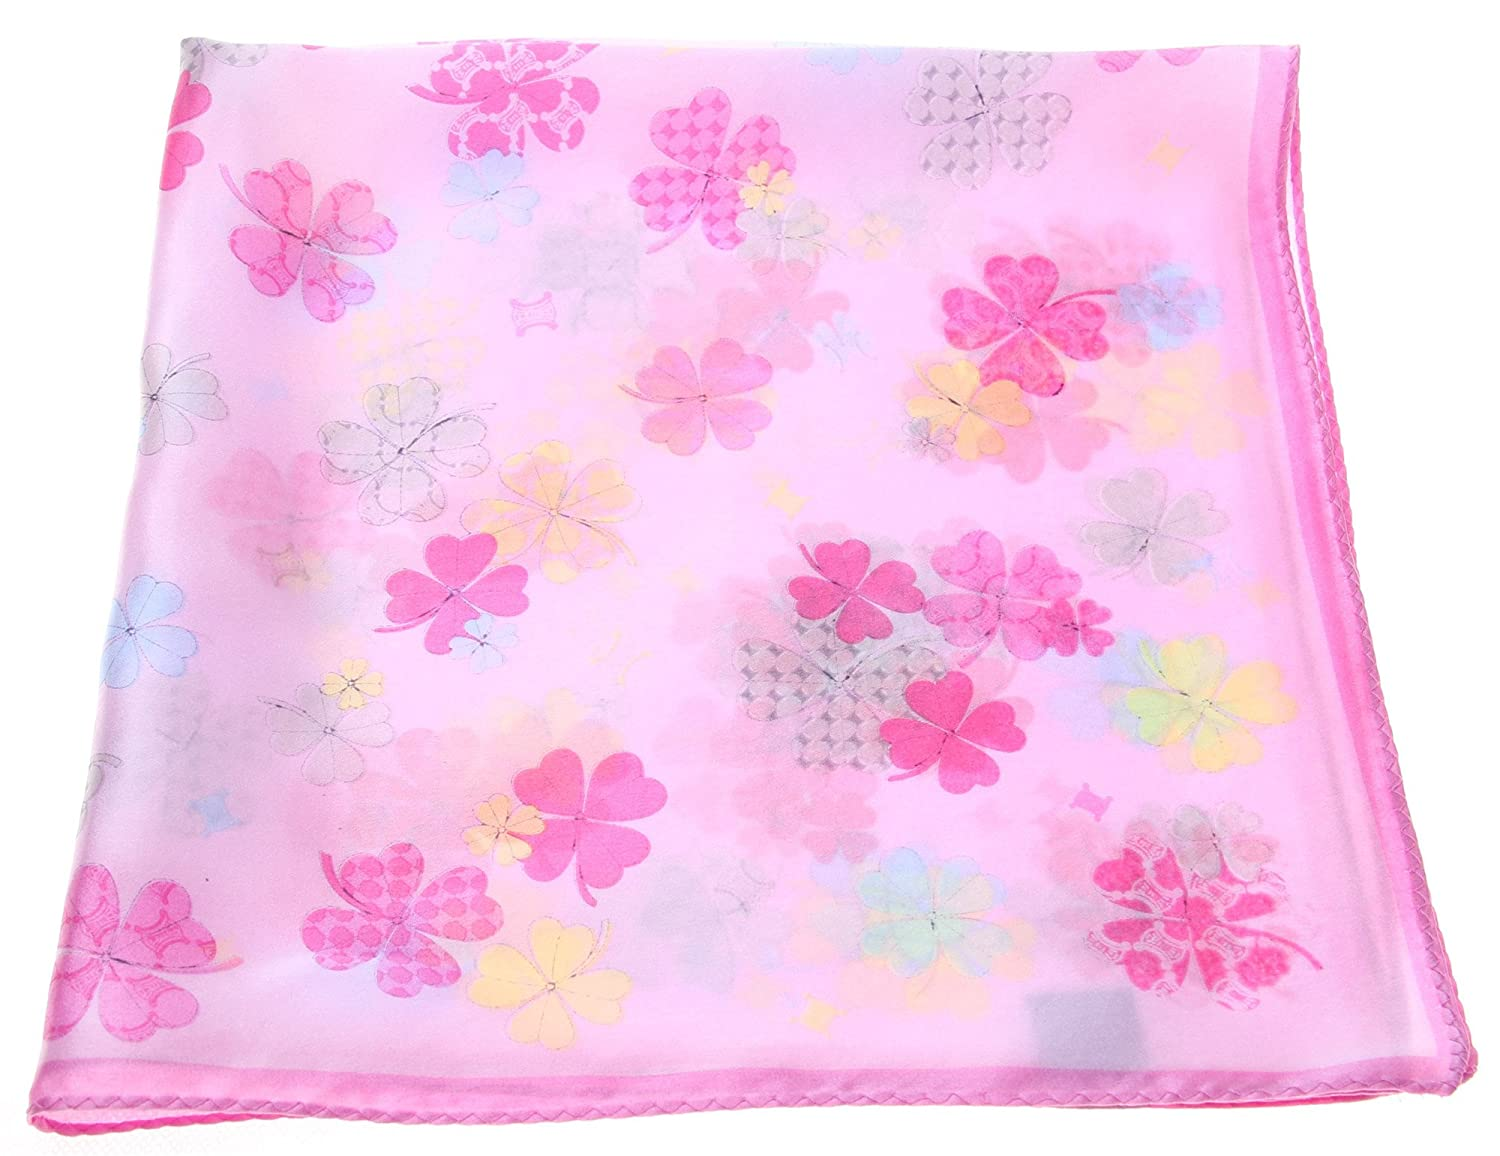 L&A Silk Pink Red Silk Squrae Scarves for Women Girls and Kids 21*21 Inches